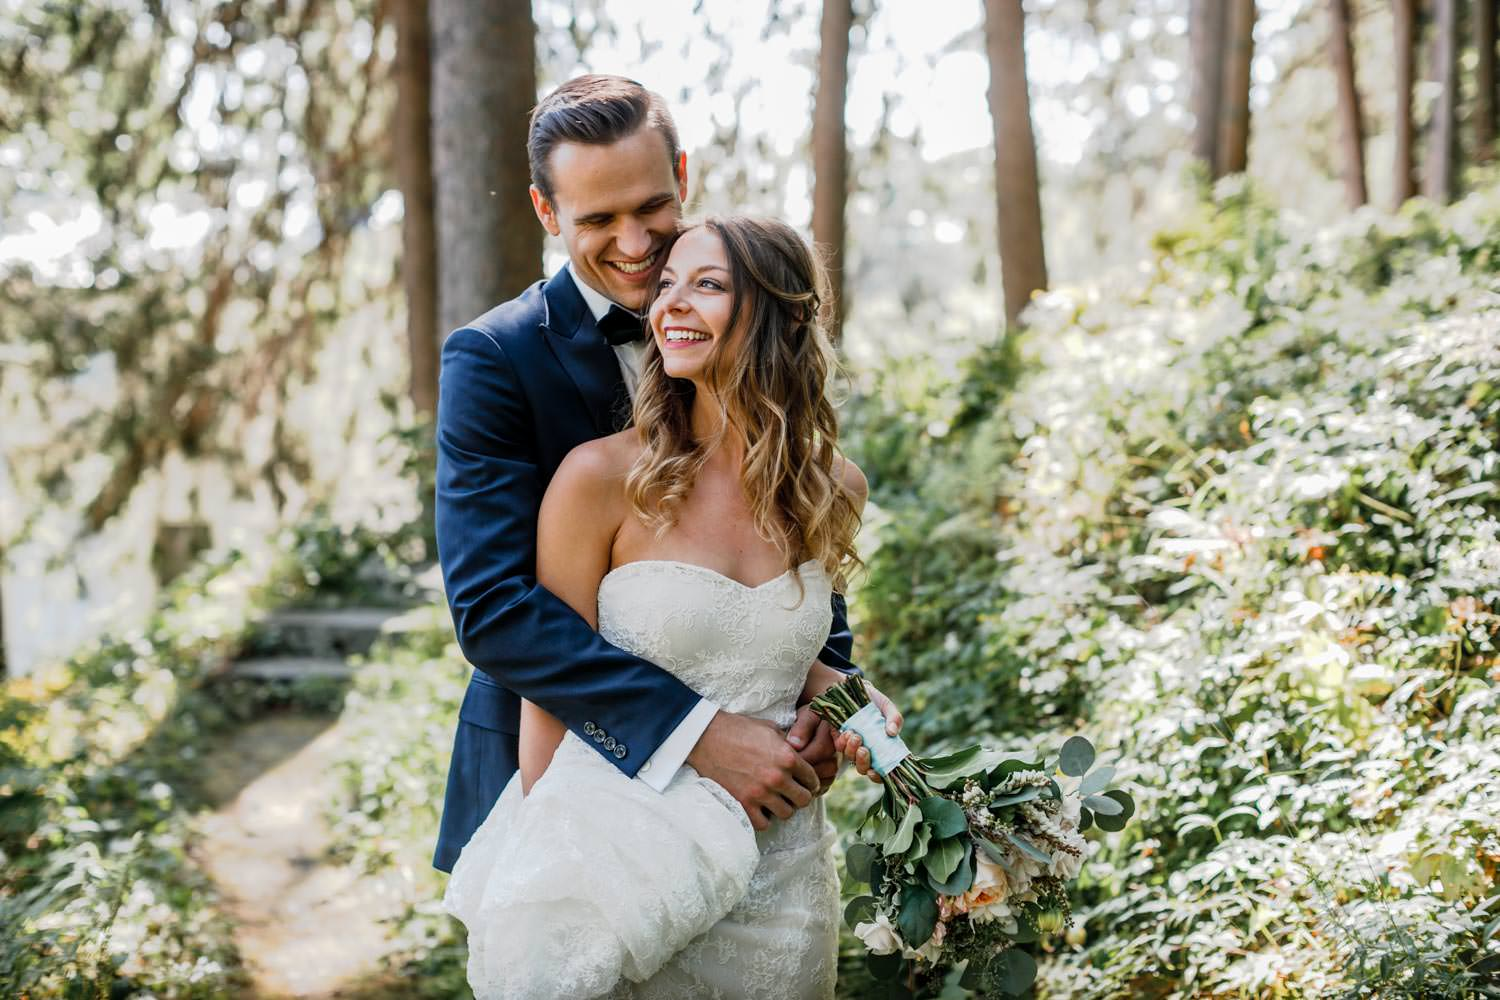 wedding groom holds bride tightly as she gazes off camera with the woods and path in the background